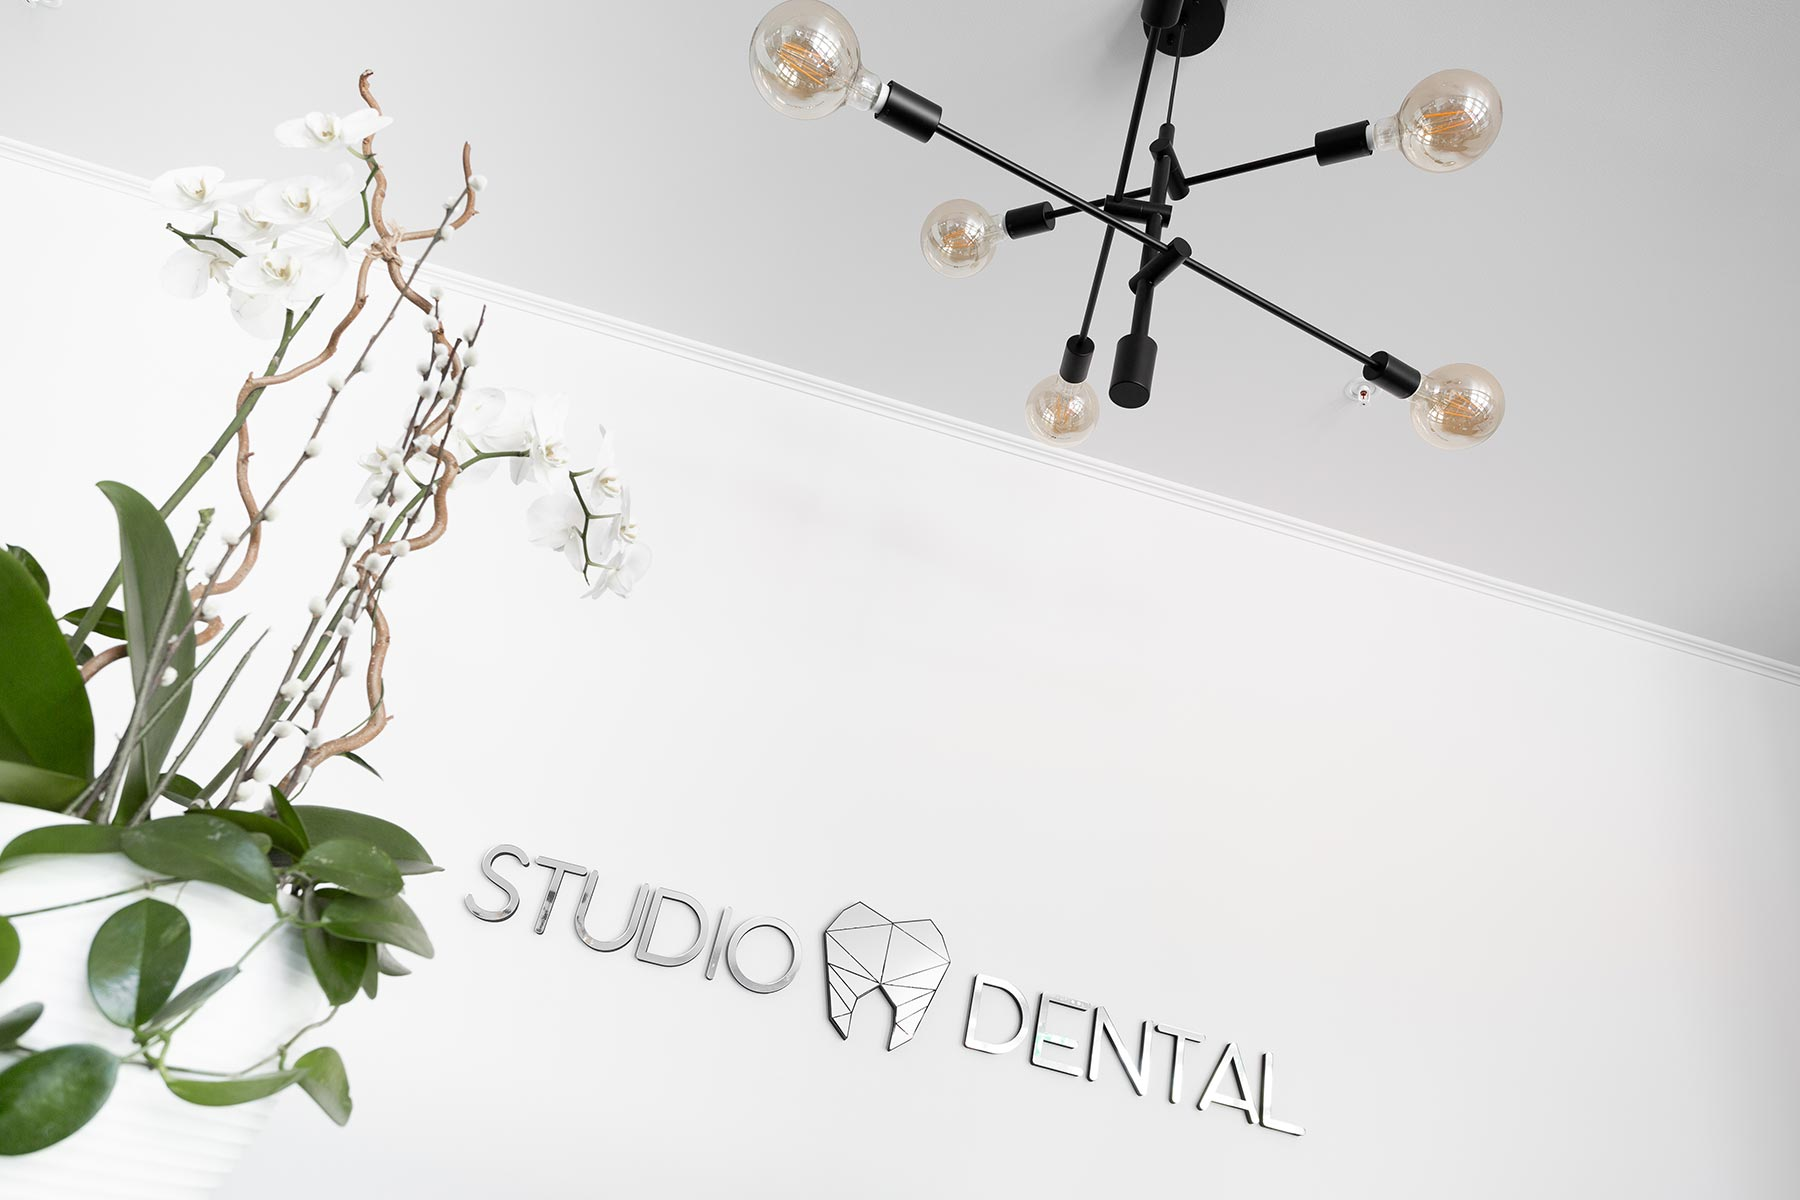 Studio_Dental-8